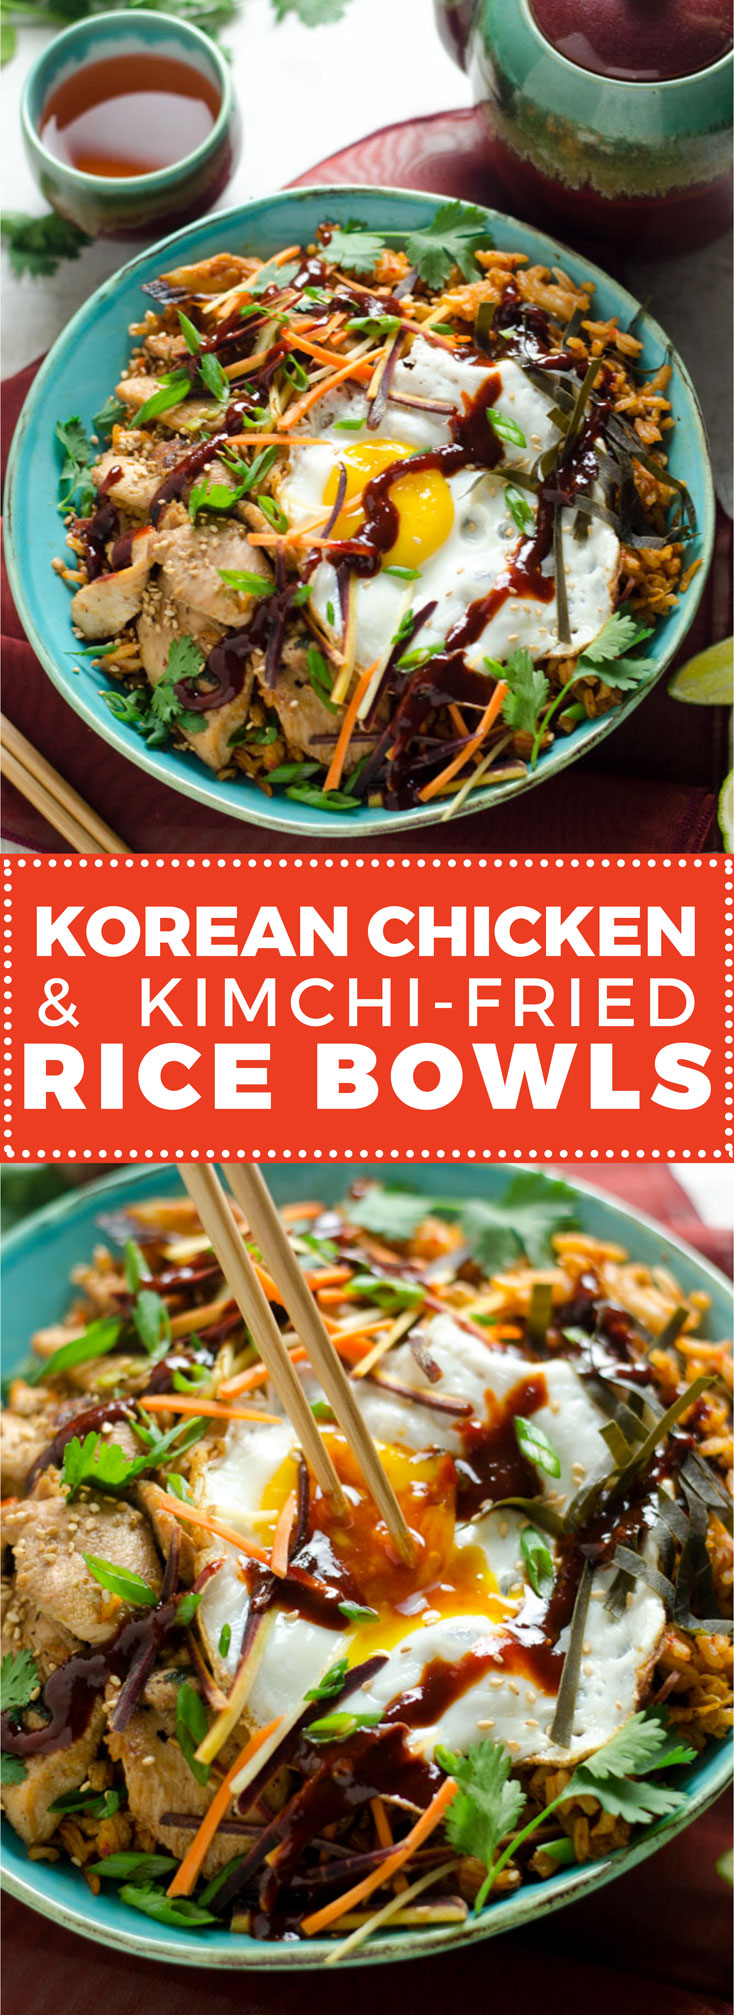 Korean Chicken and Kimchi Fried Rice Bowls. These spicy Asian-inspired bowls will make you want to never order takeout again. | hostthetoast.com